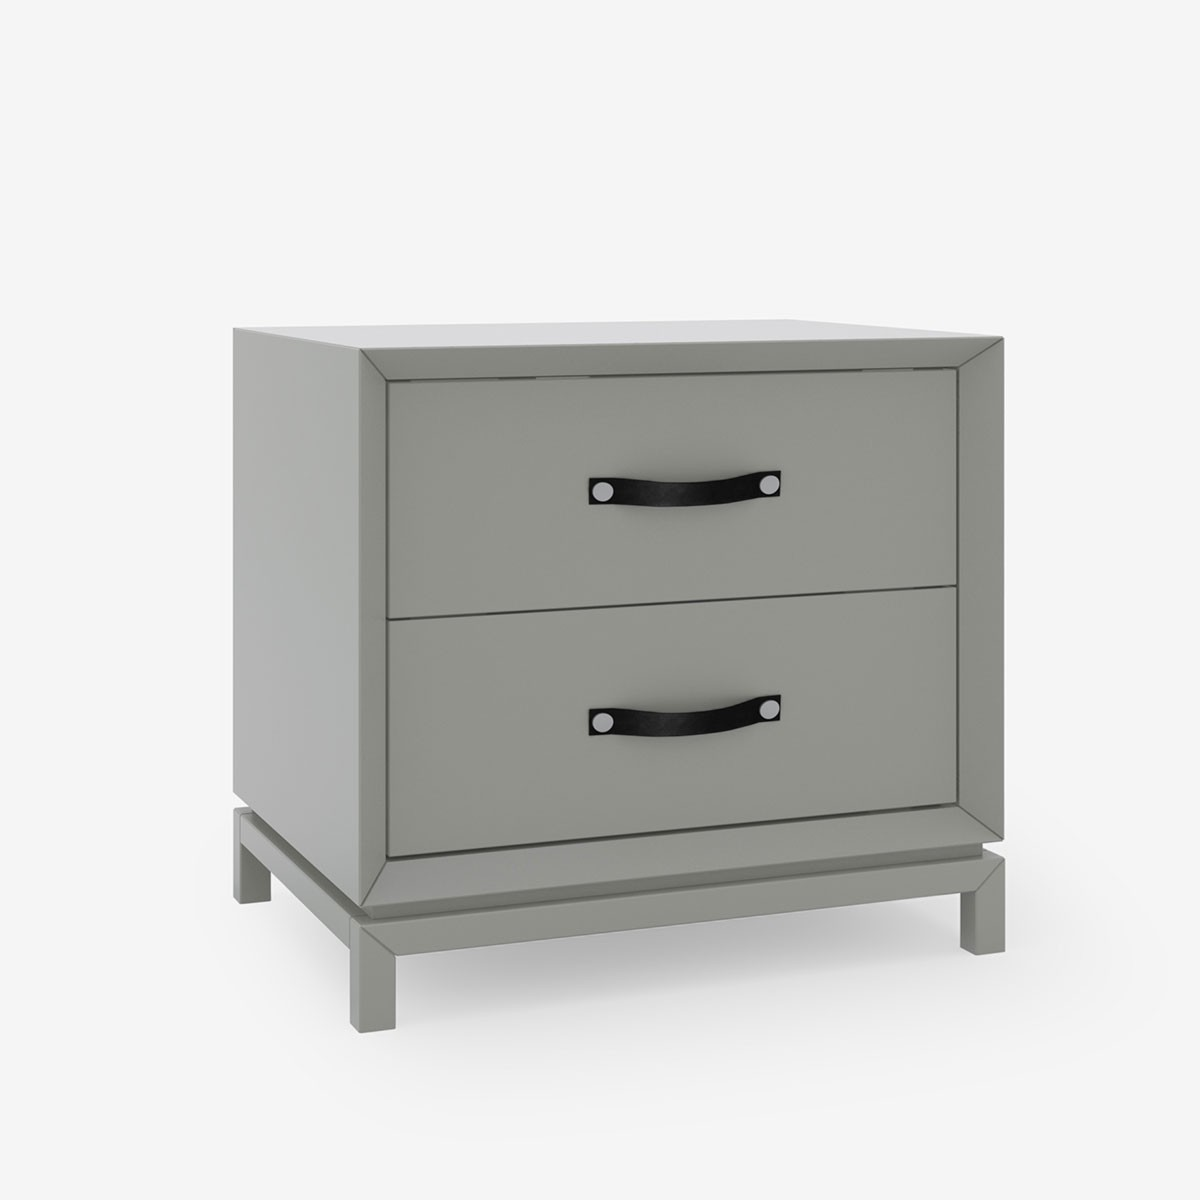 Tailored Style Bedside Table - Soft Taupe Lacquer & Leather Strap Handle